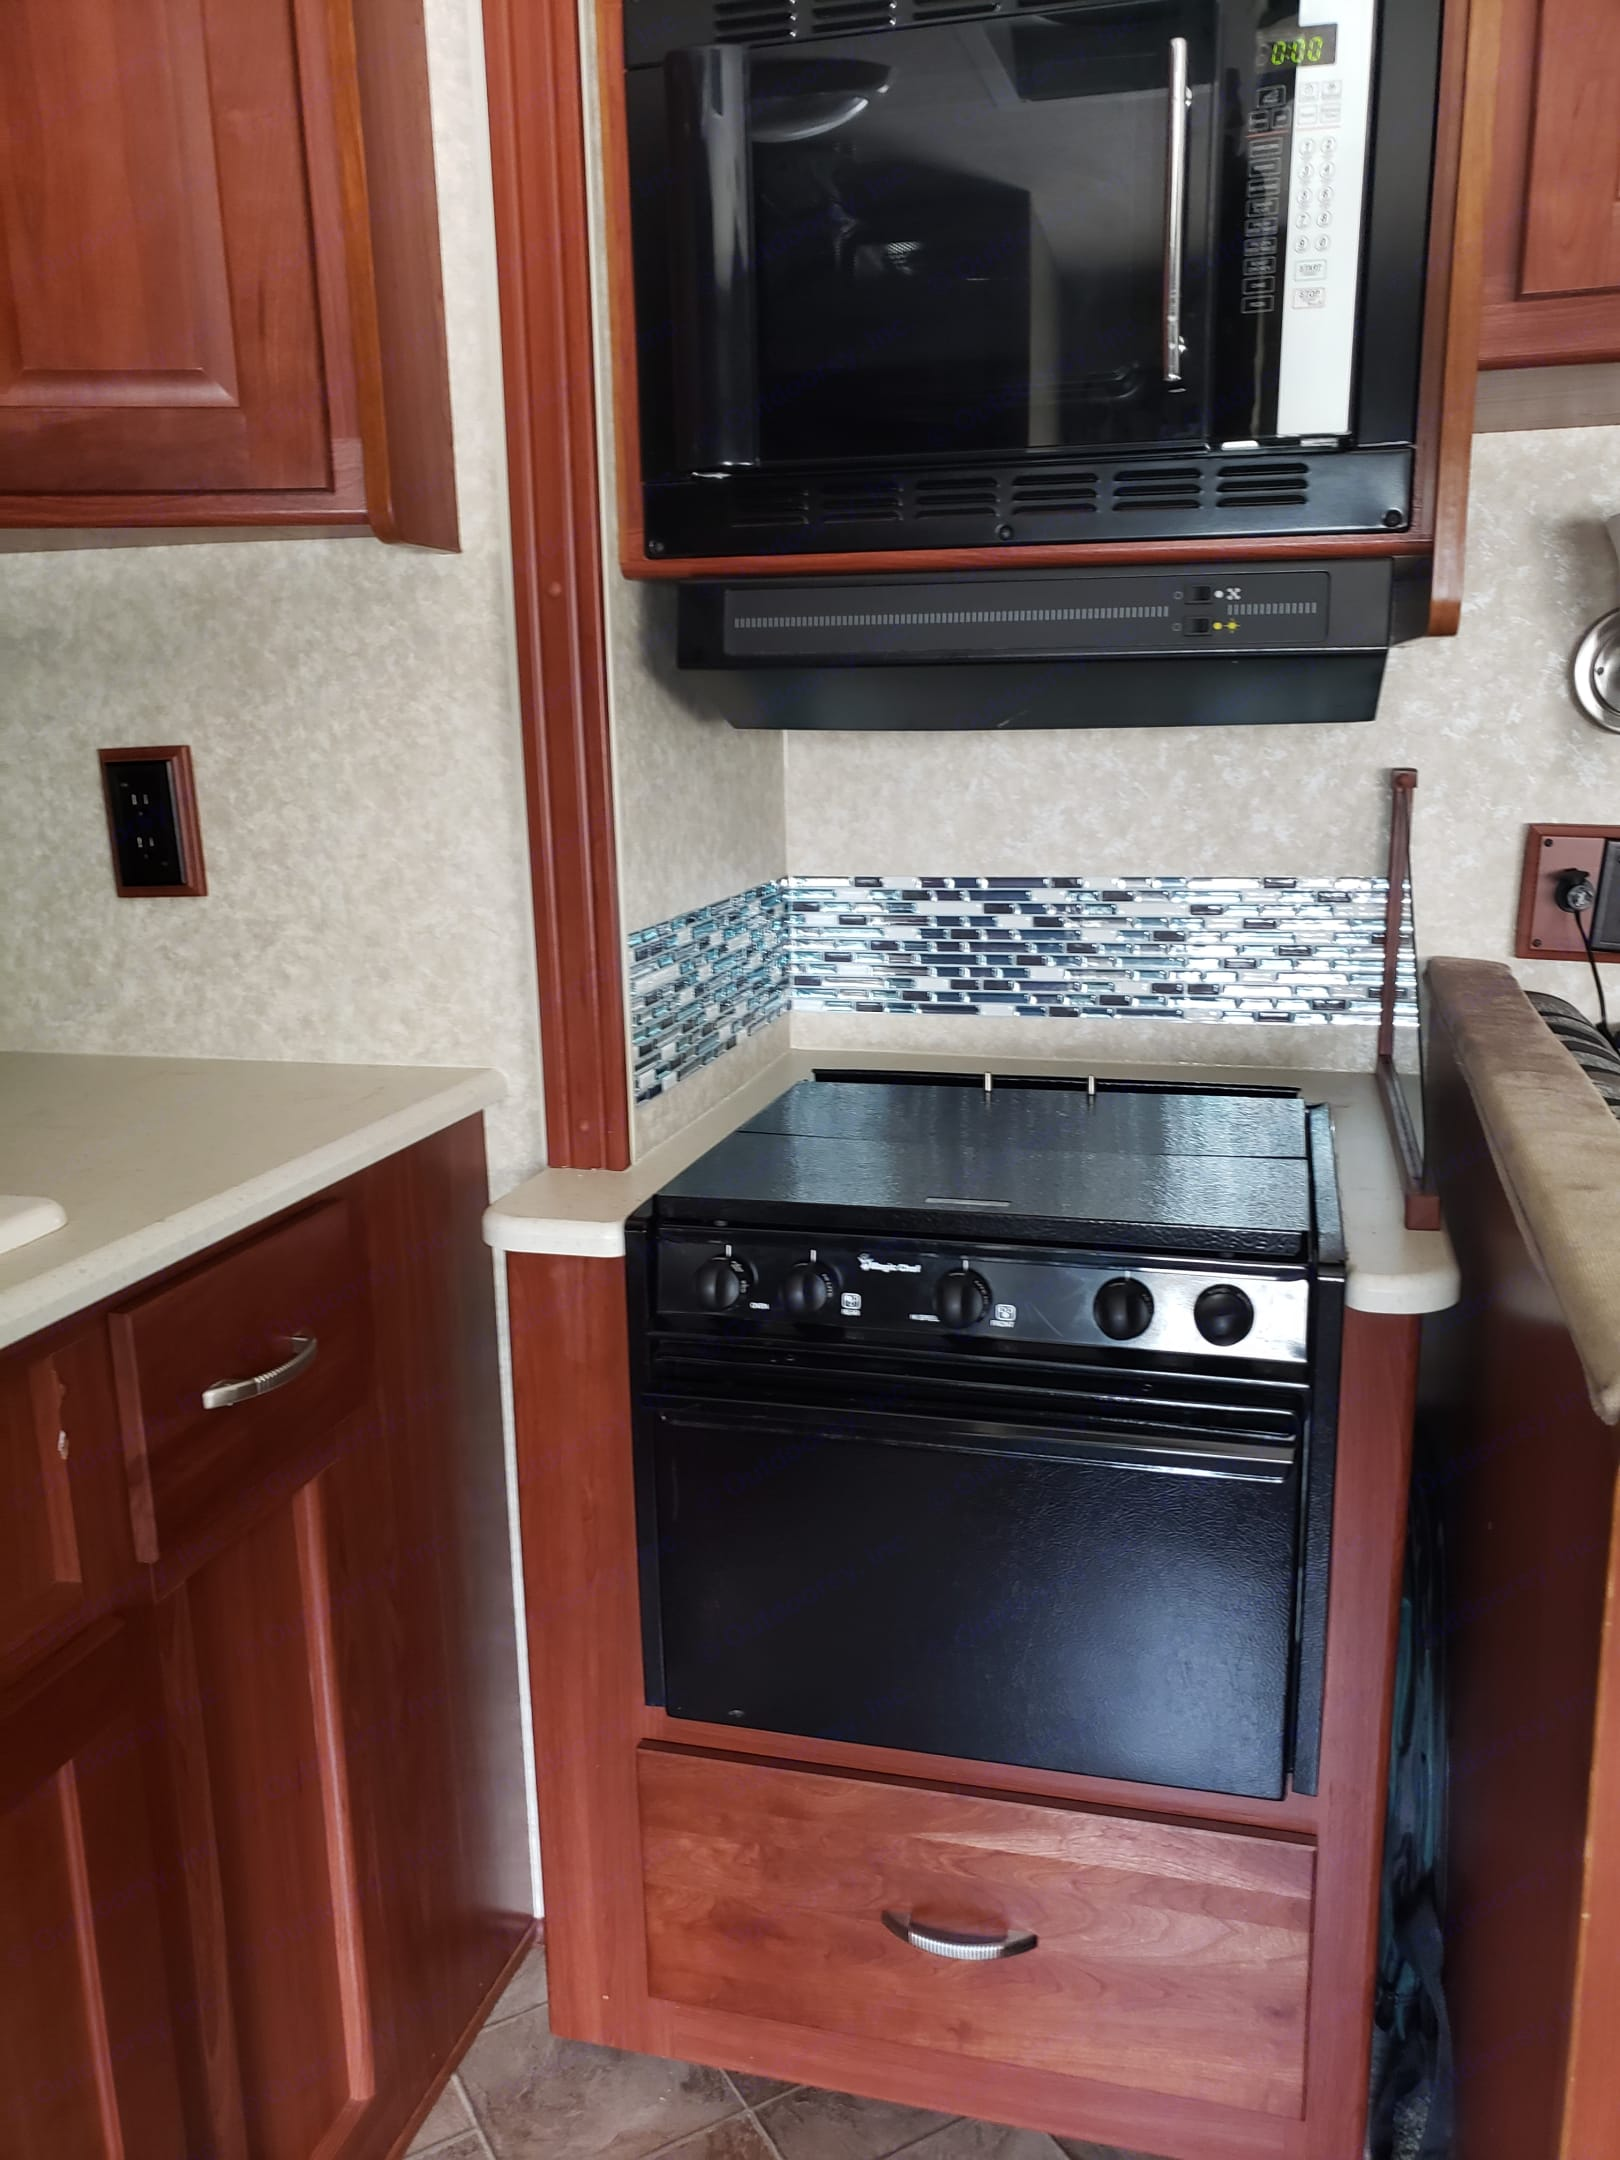 Gas range with convection/microwave oven above. . Winnebago Vista 2010